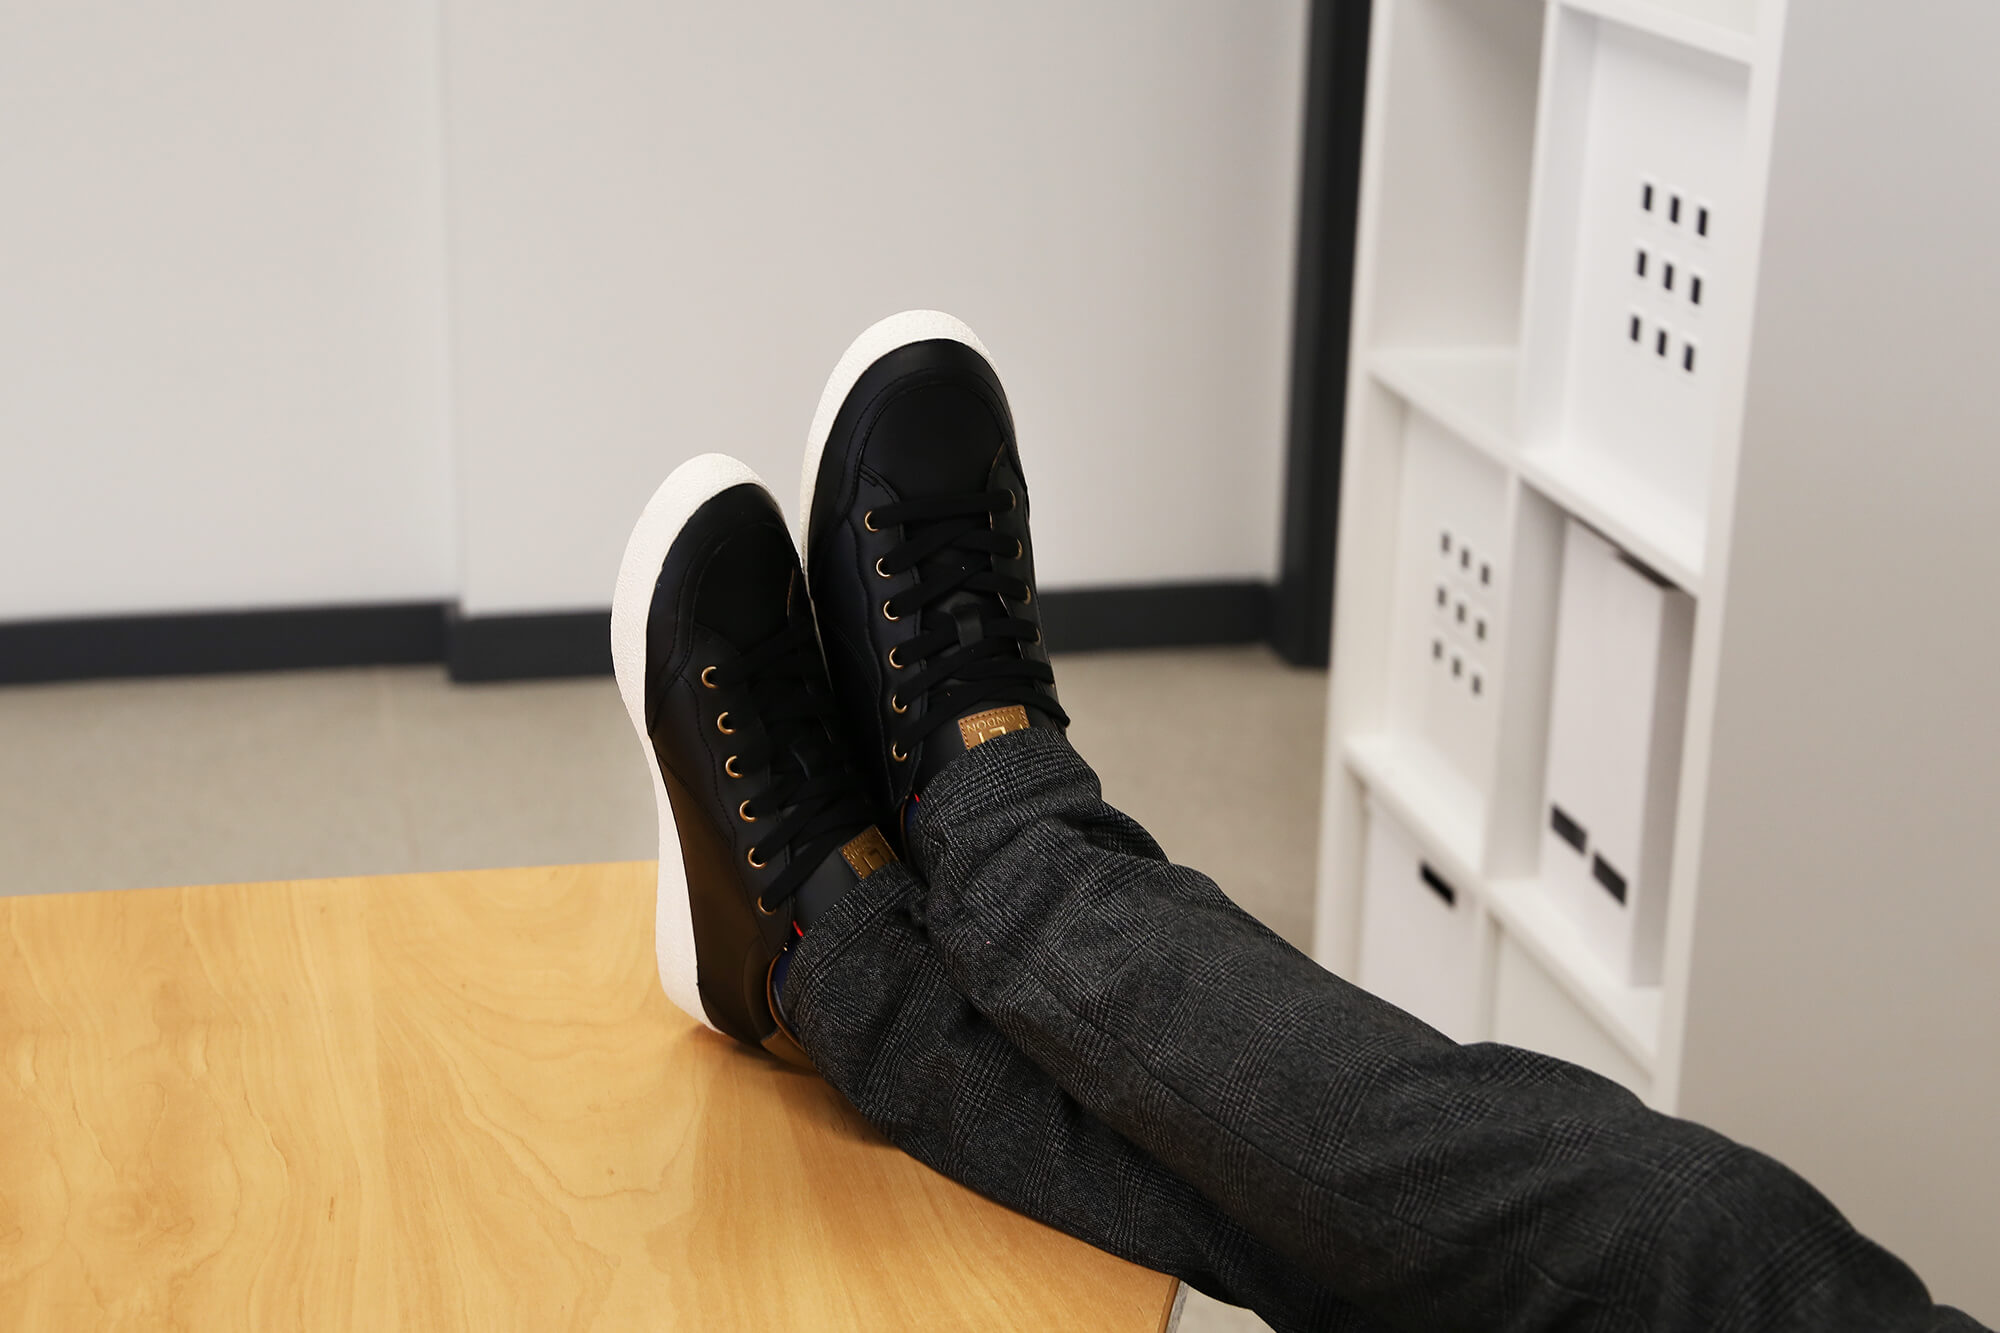 The Best Business Casual Shoes for Men